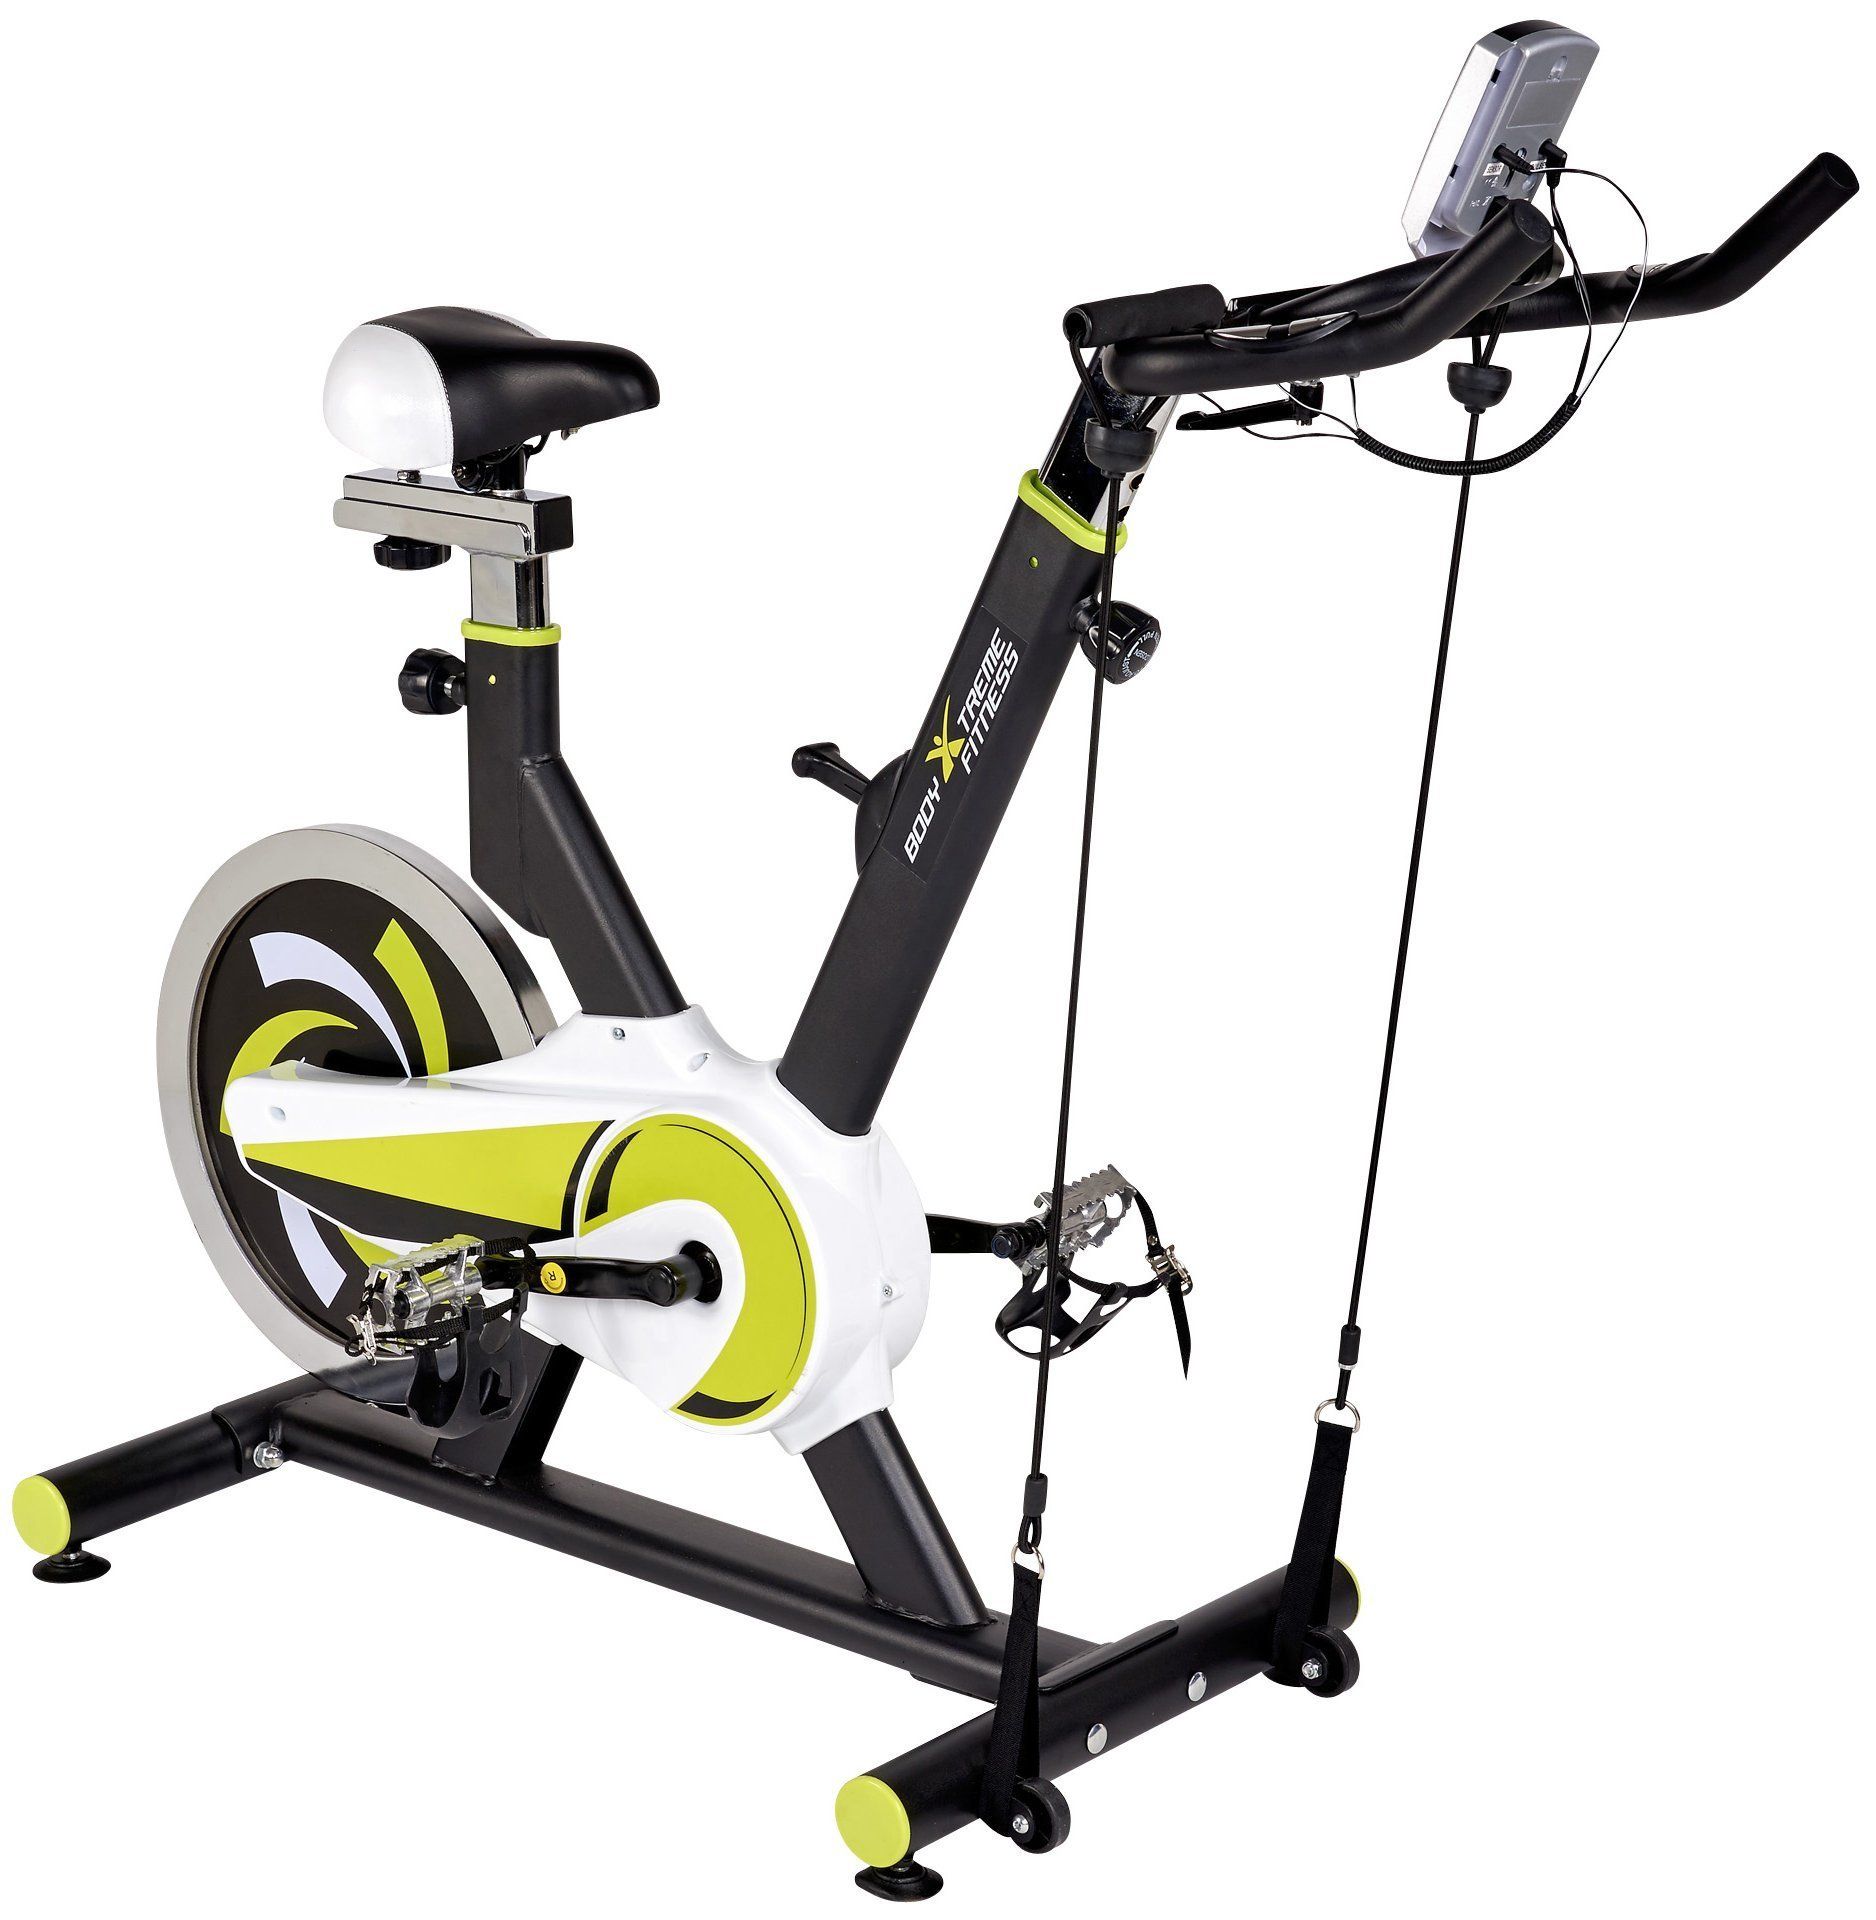 Body Xtreme Fitness Lime Green/Black Exercise Bike, Home Gym Equipment, 40lb Flywheel, Resistance Bands, Water Bottle + BONUS COOLING TOWEL by Body Xtreme Fitness USA